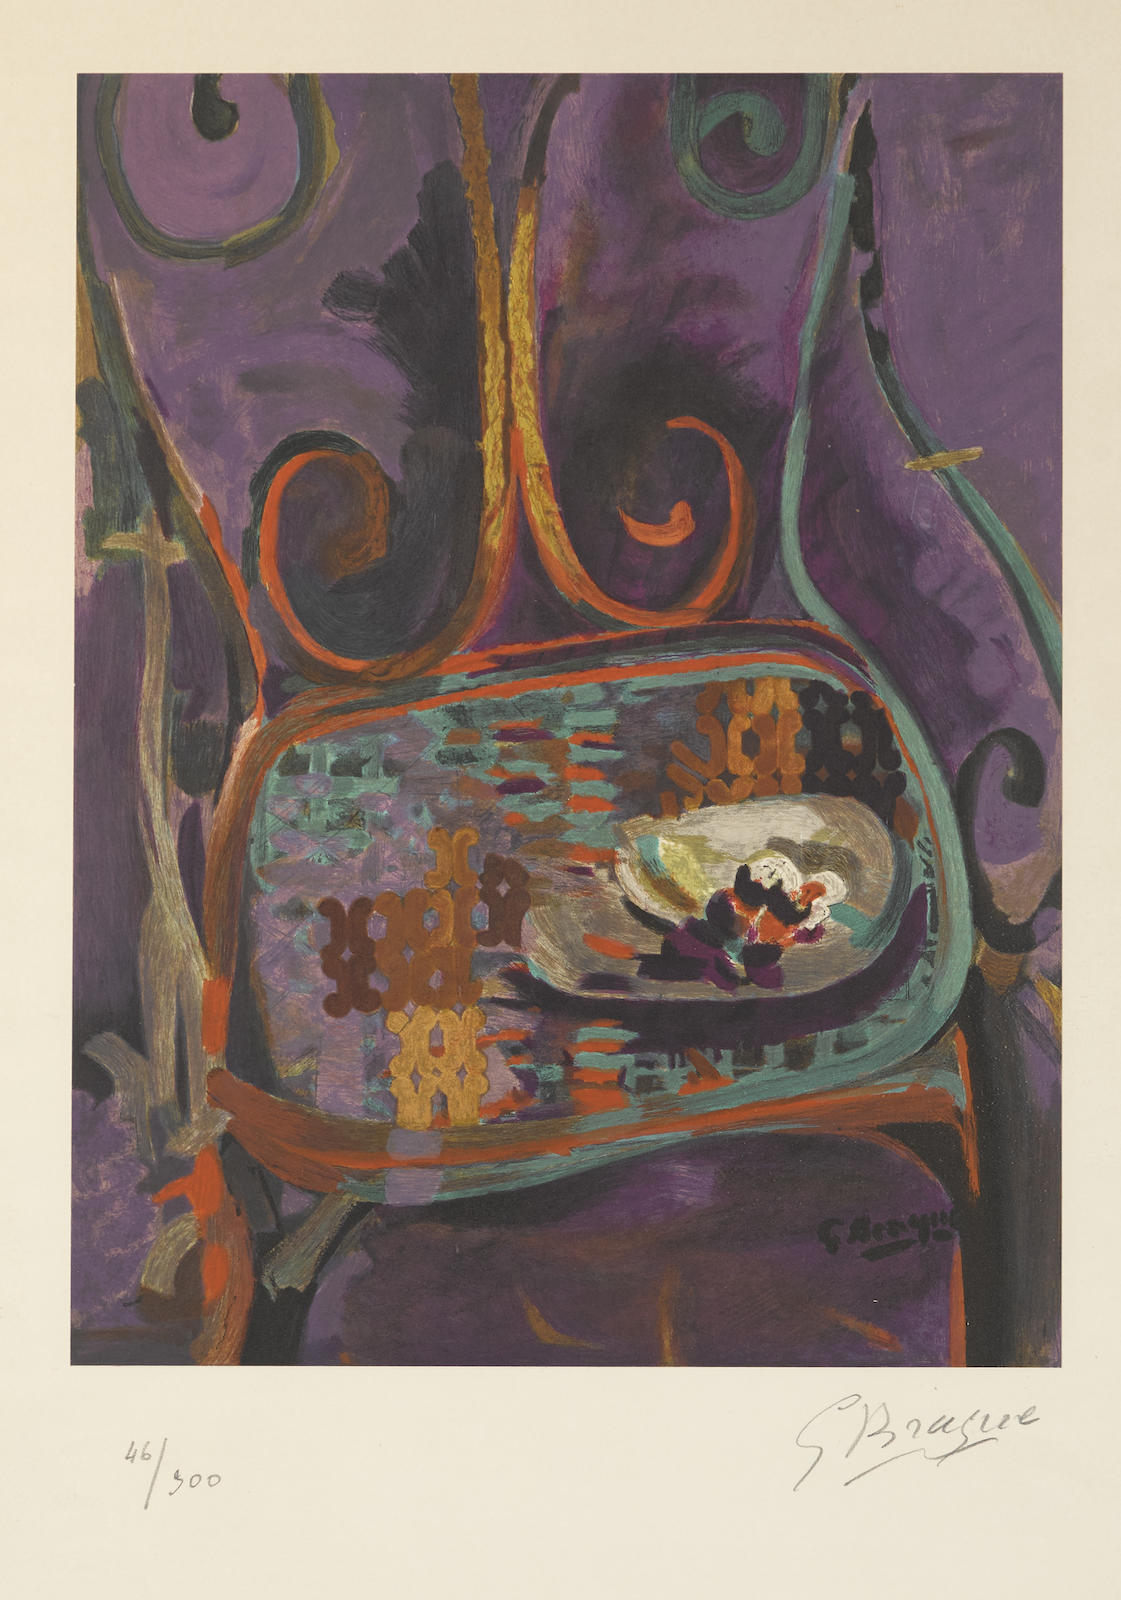 Georges Braque-After Georges Braque - La Chaise-1960